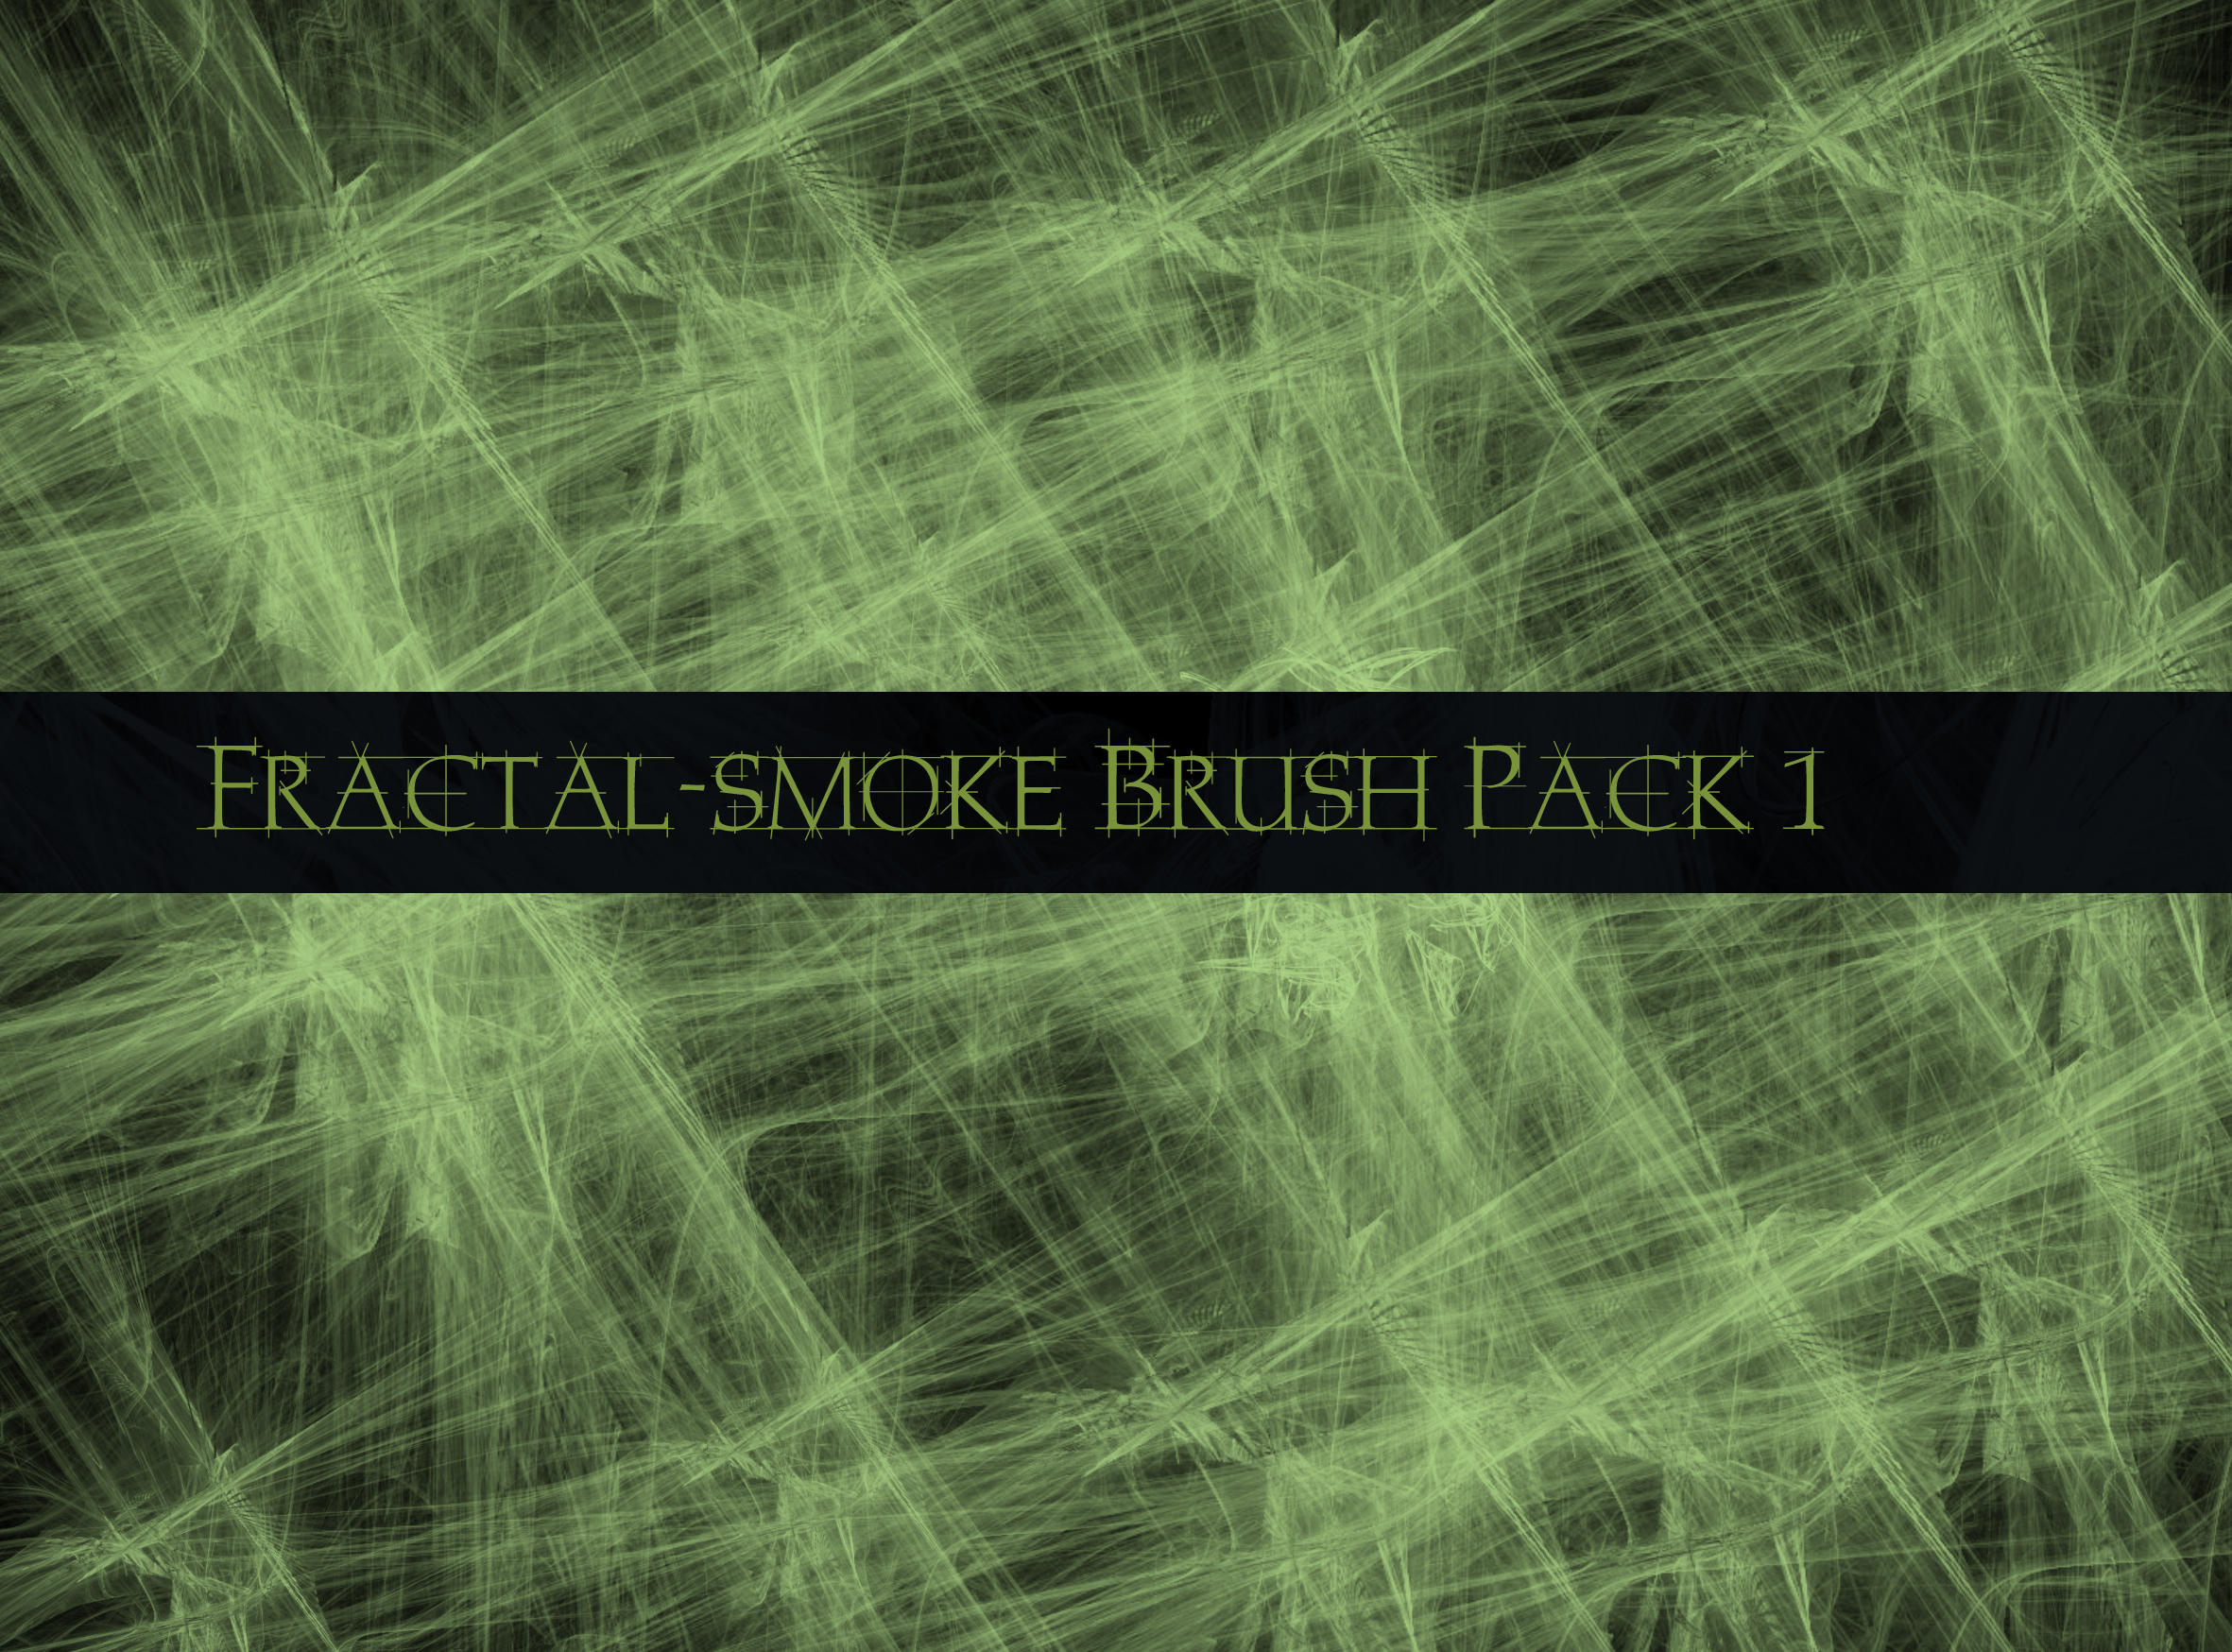 Fractal Smoke Brush Pack1 by The-Average-Alex